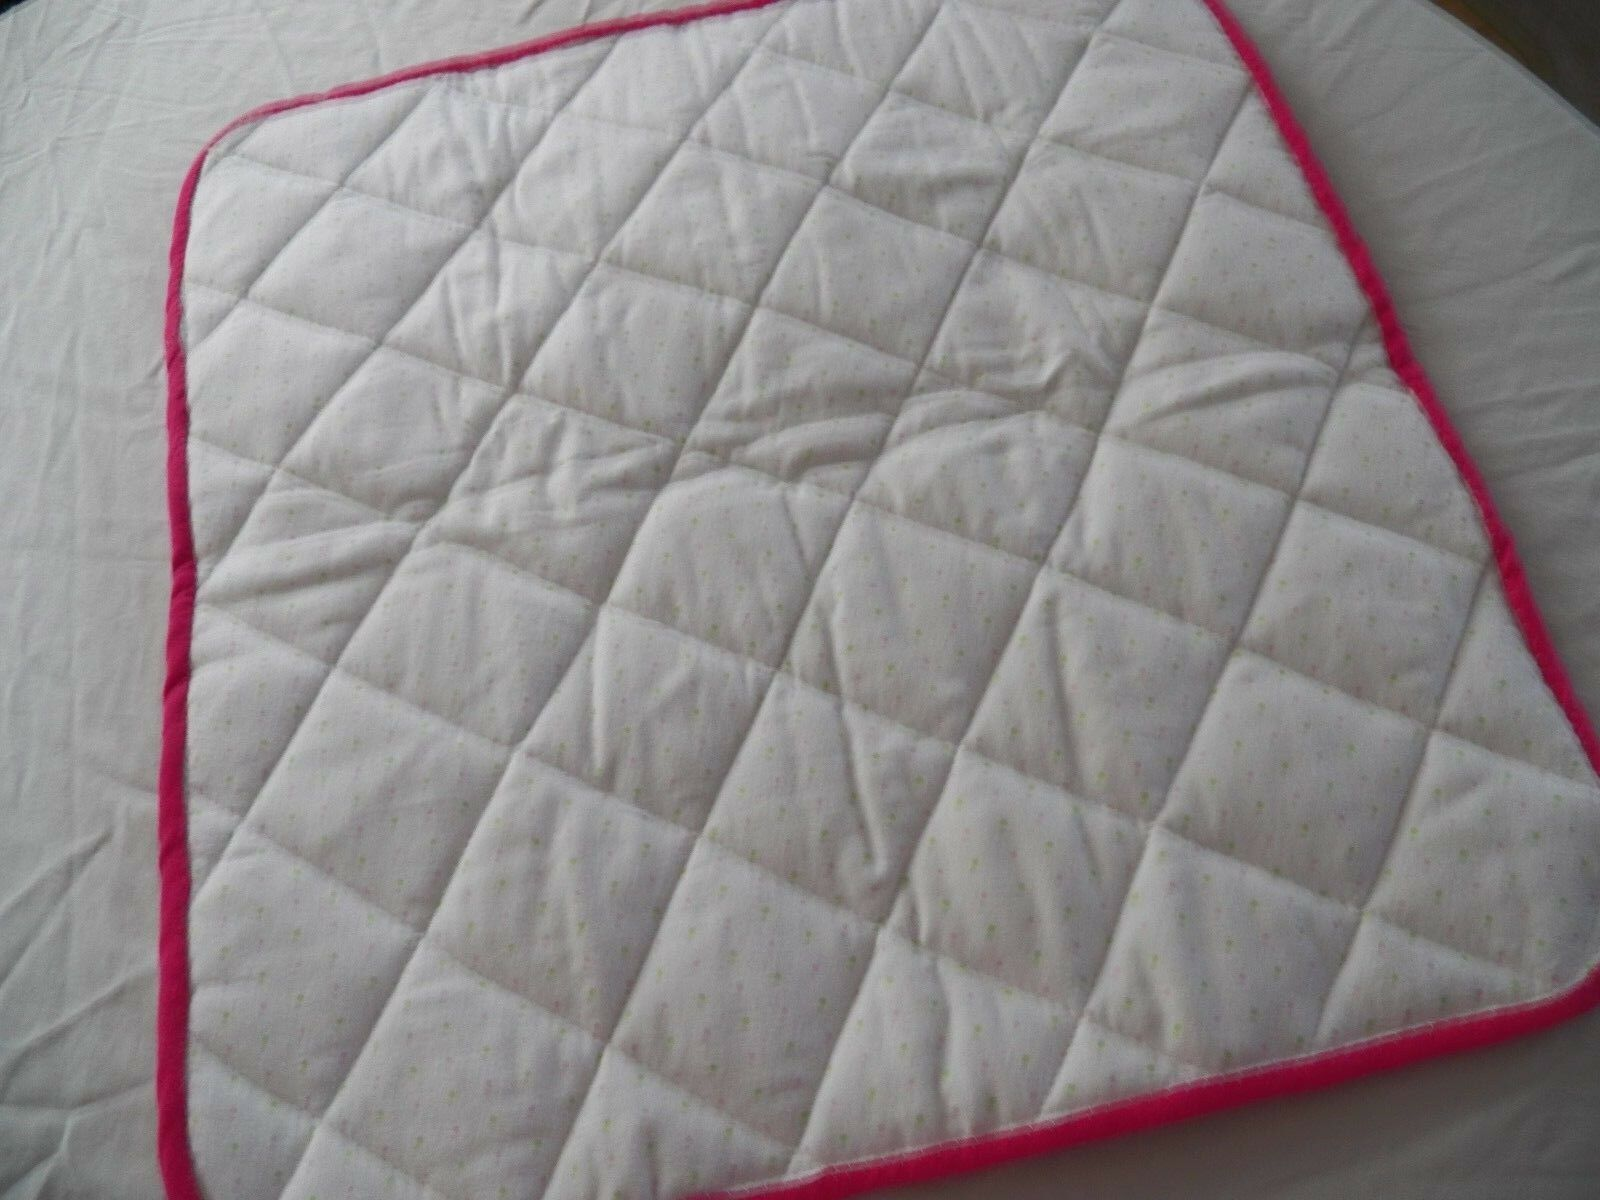 BABY CHANGING PAD Portable Diaper Travel Mat Cotton Washable Padded Handmade NEW 10